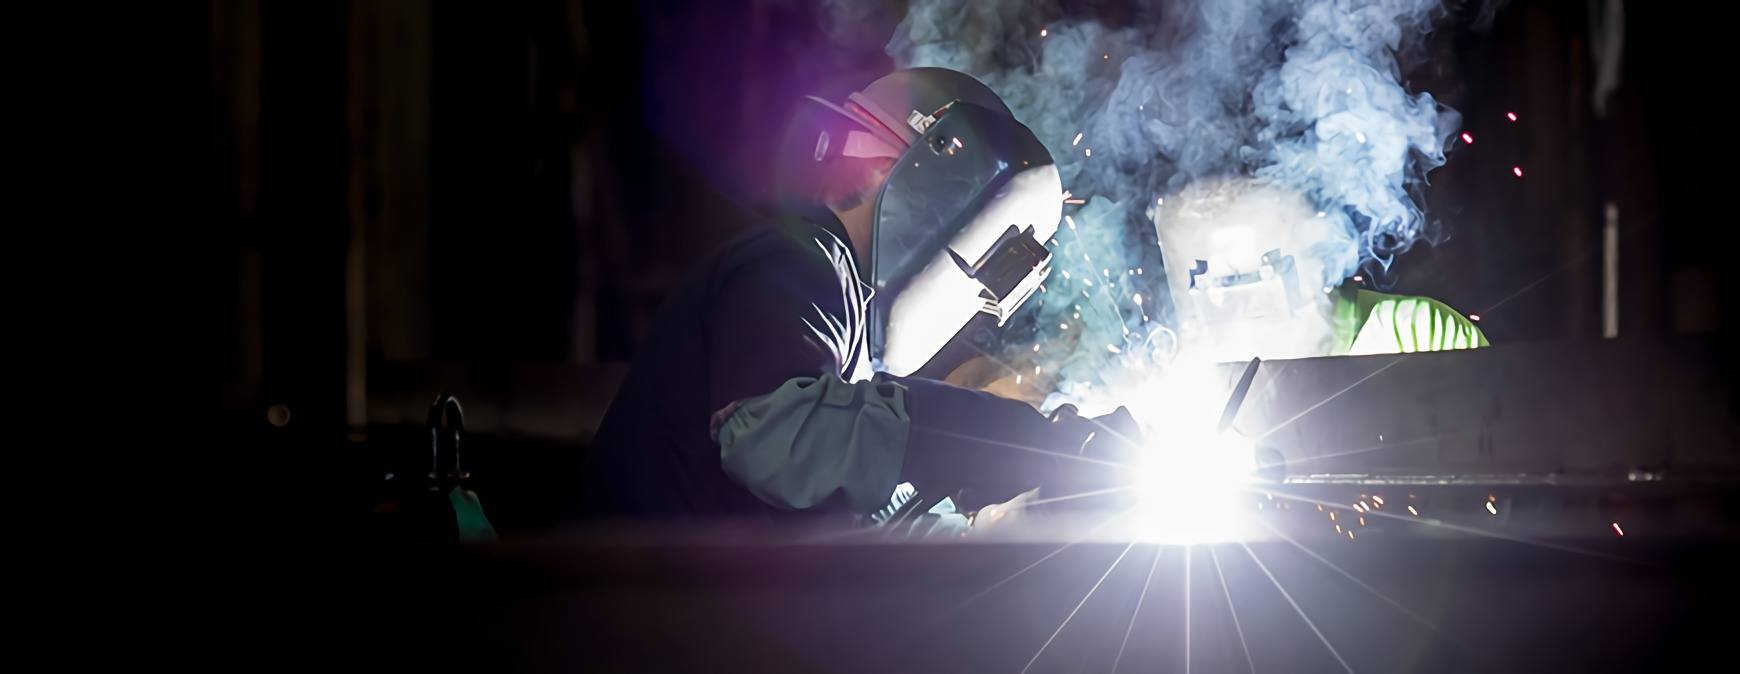 welder working in dark place